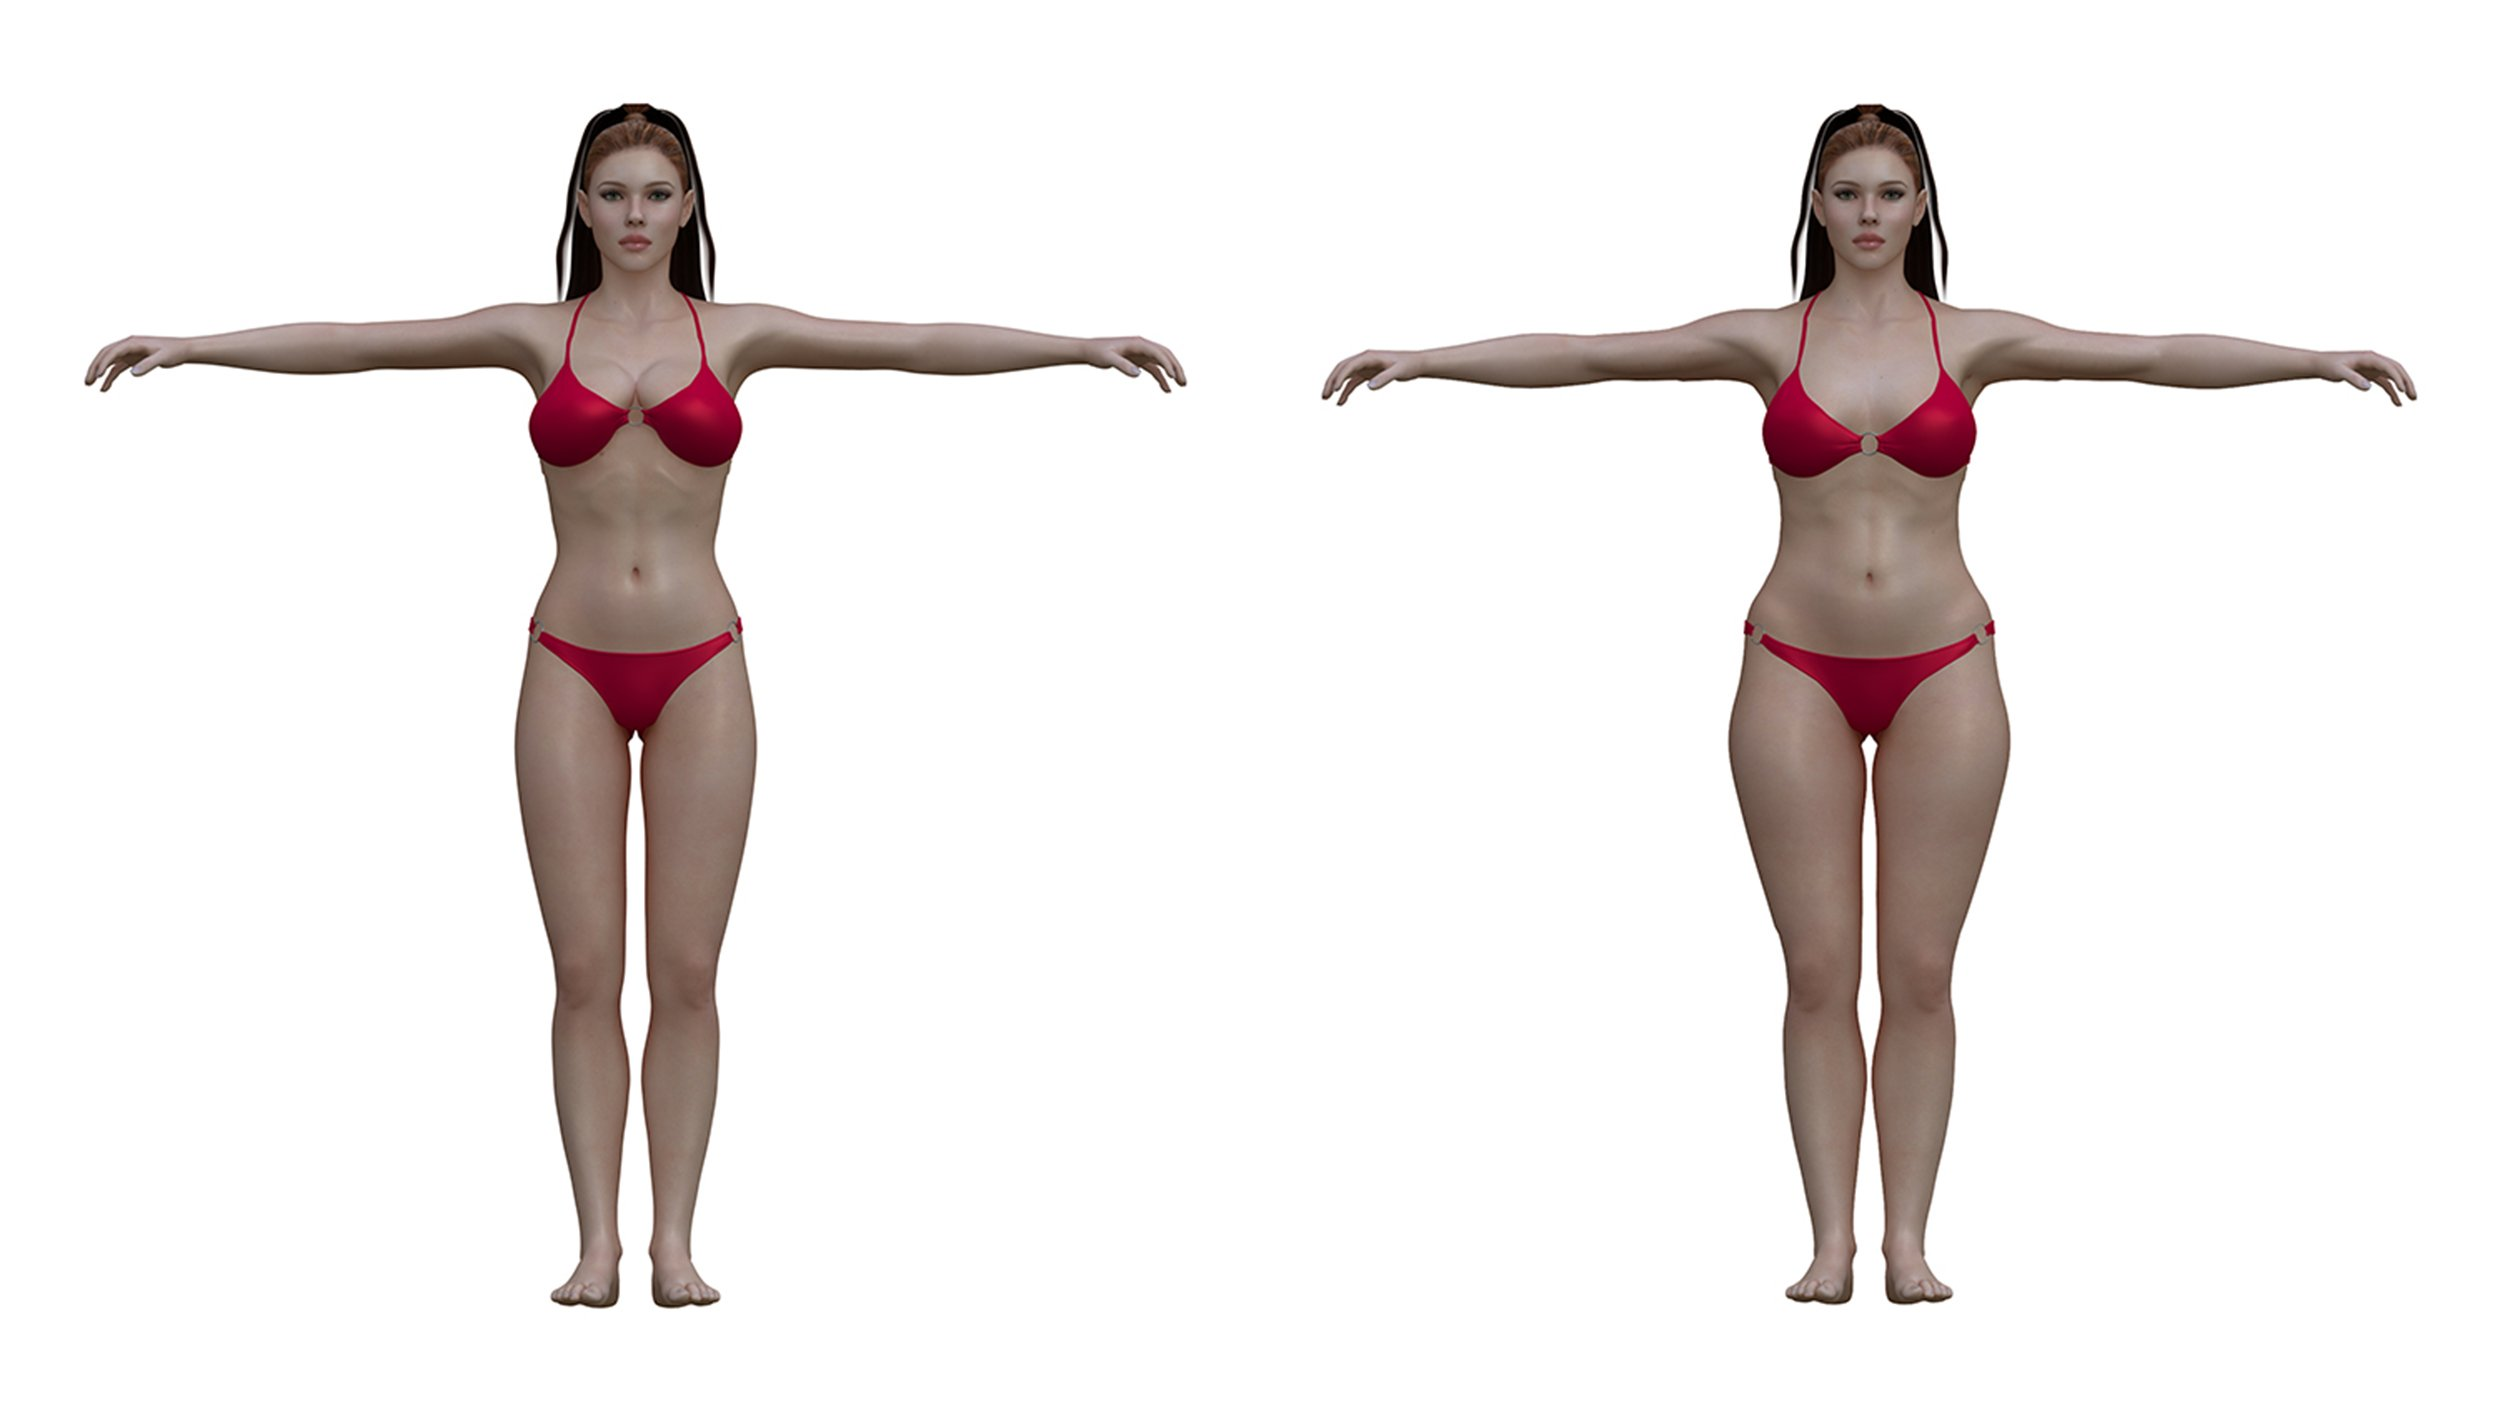 Normal Values for The Shape And Size Of A Woman's Uterus?